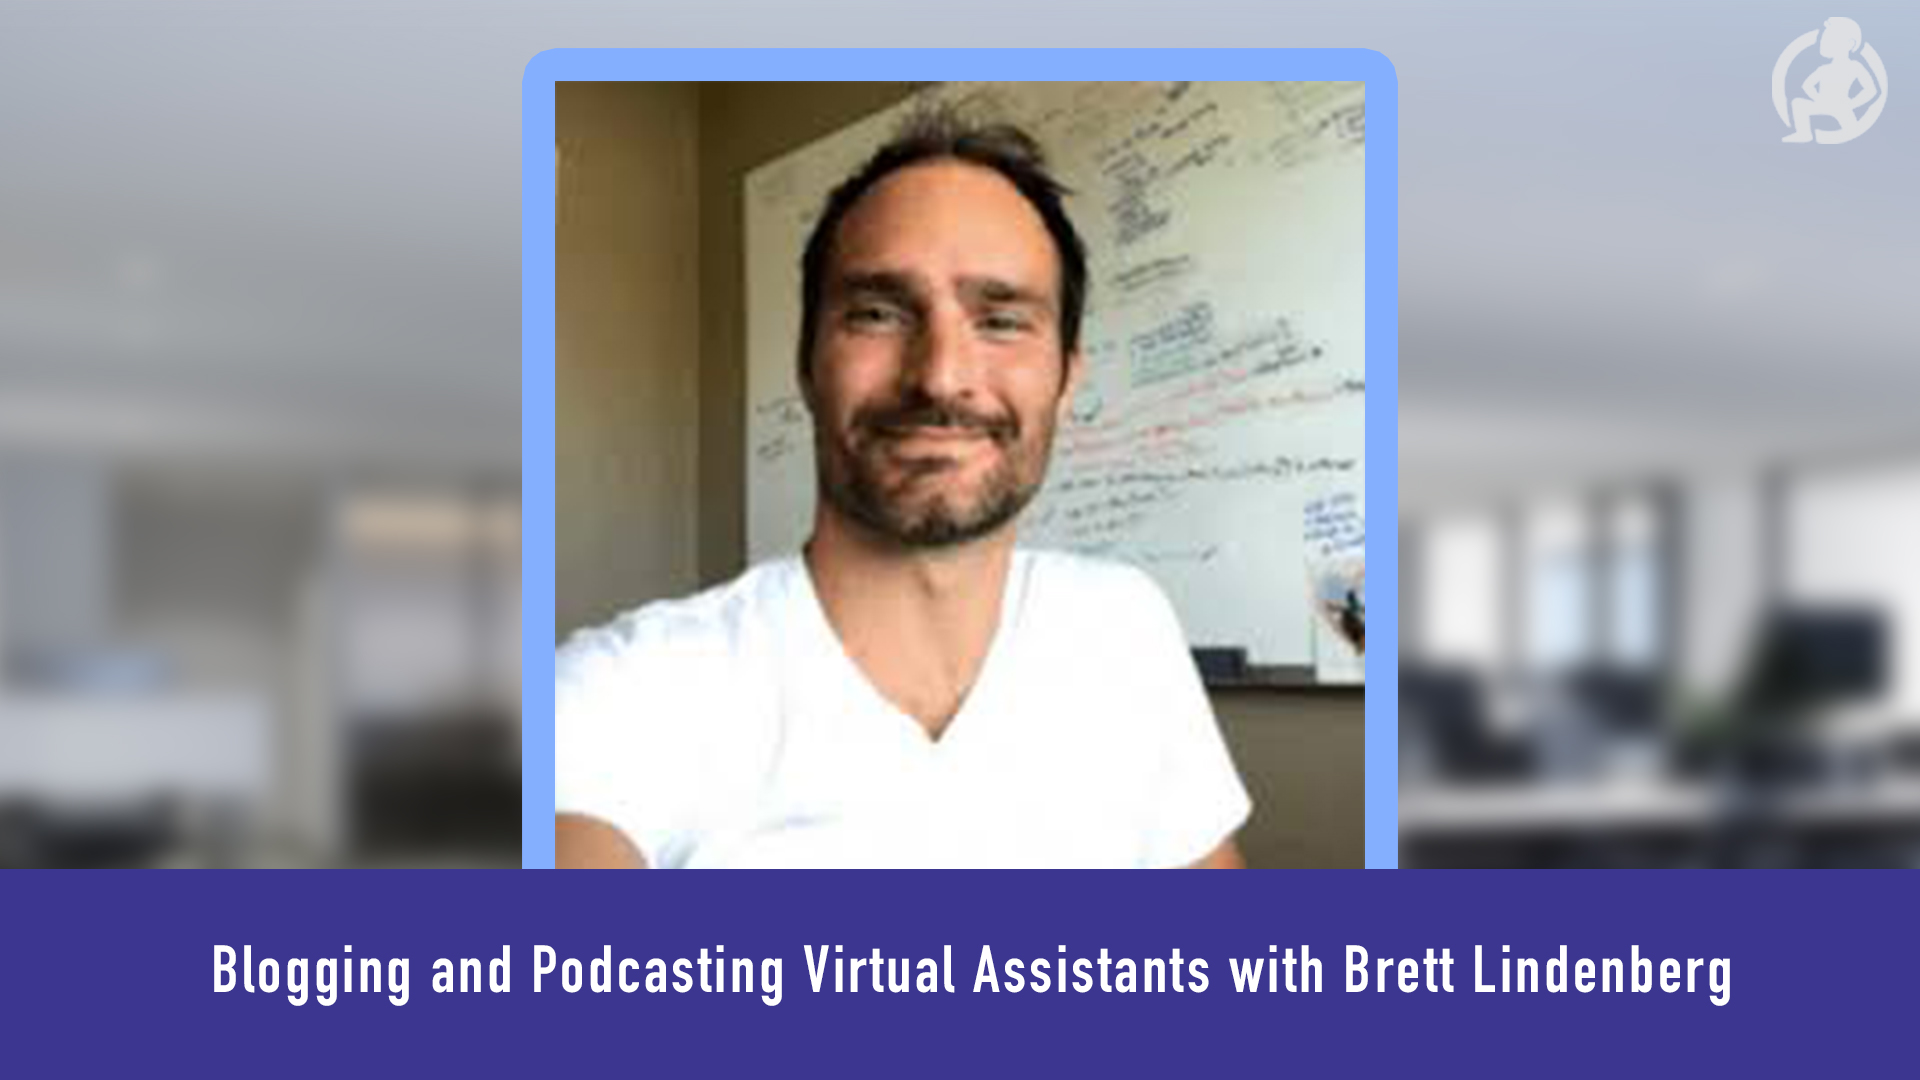 Case Study: Blogging and Podcasting Virtual Assistants – Brett Lindenberg